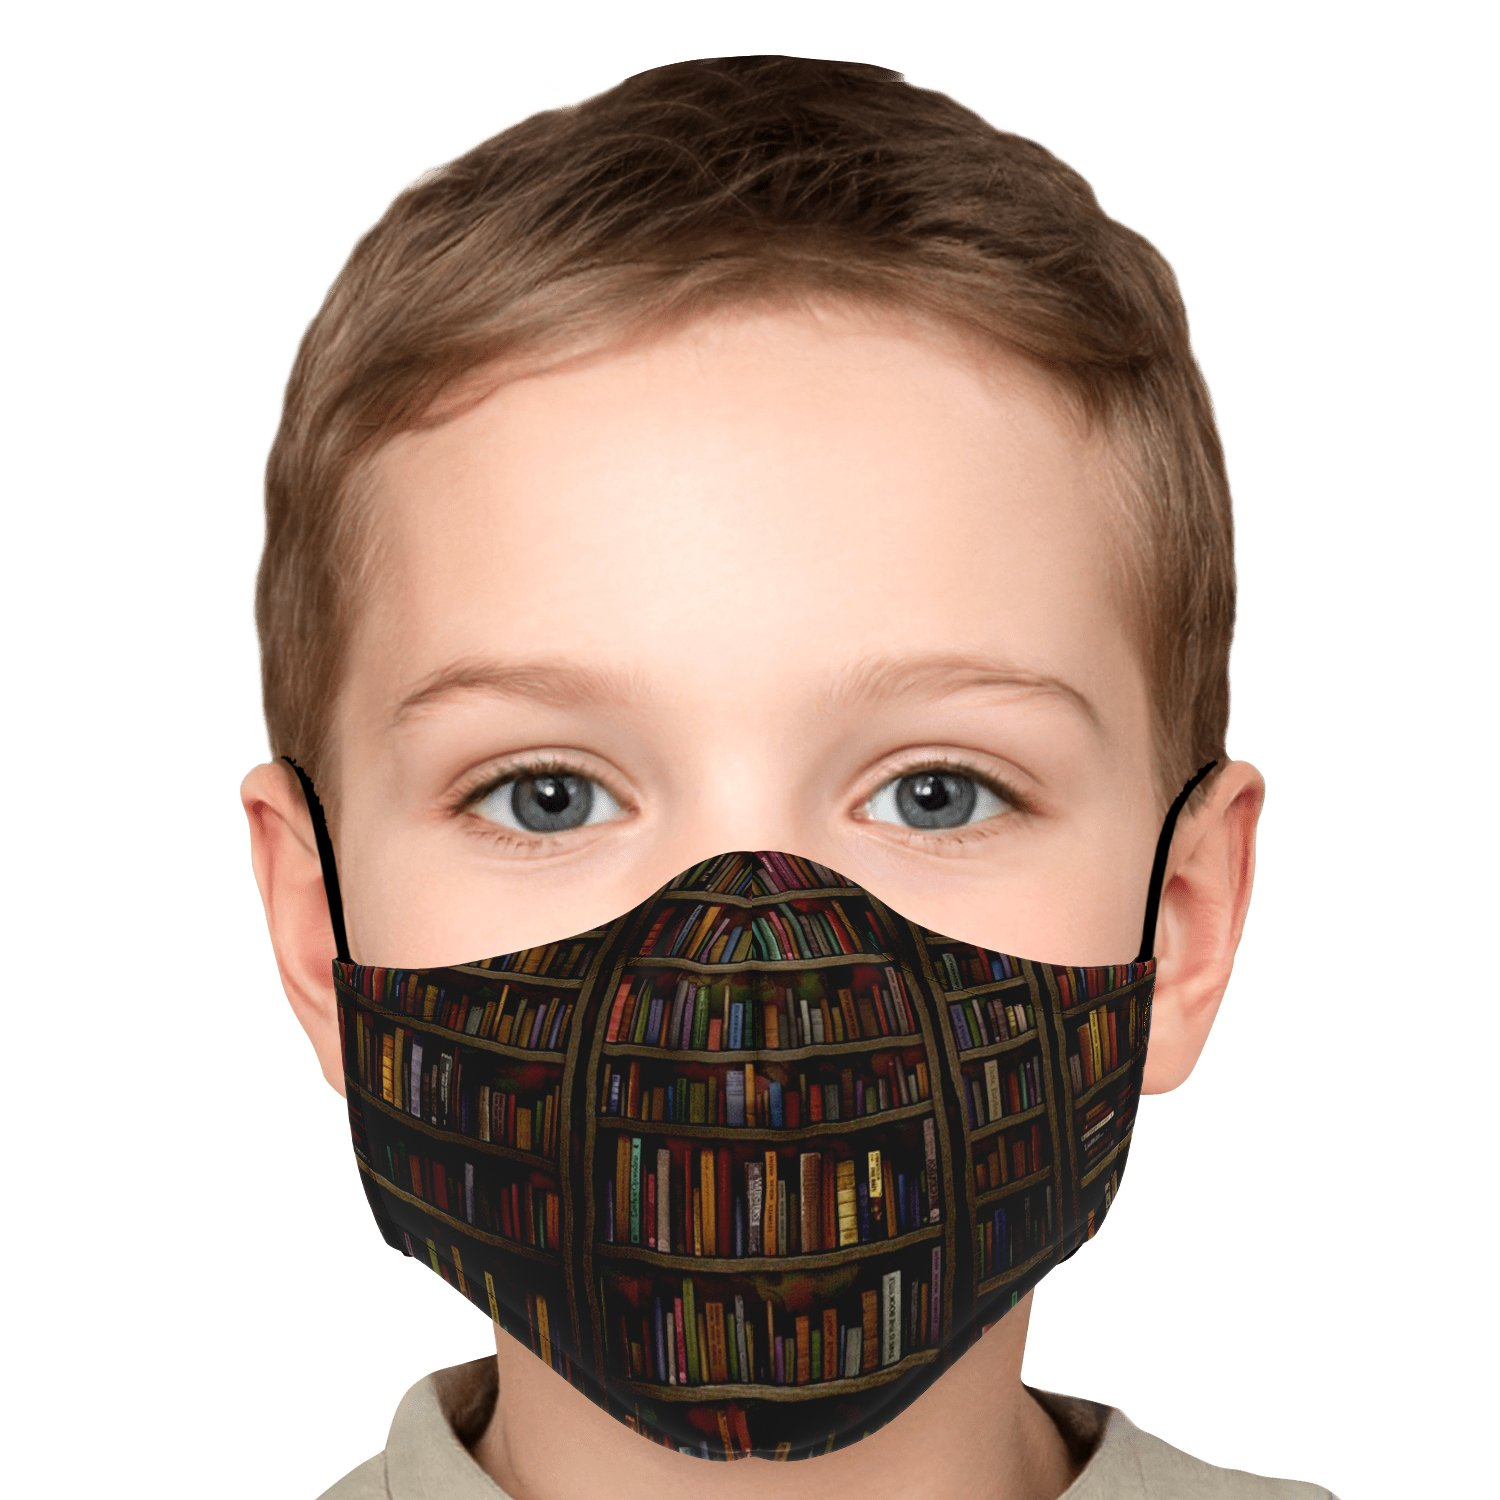 Librarian Old Book Lovers Face Mask 6